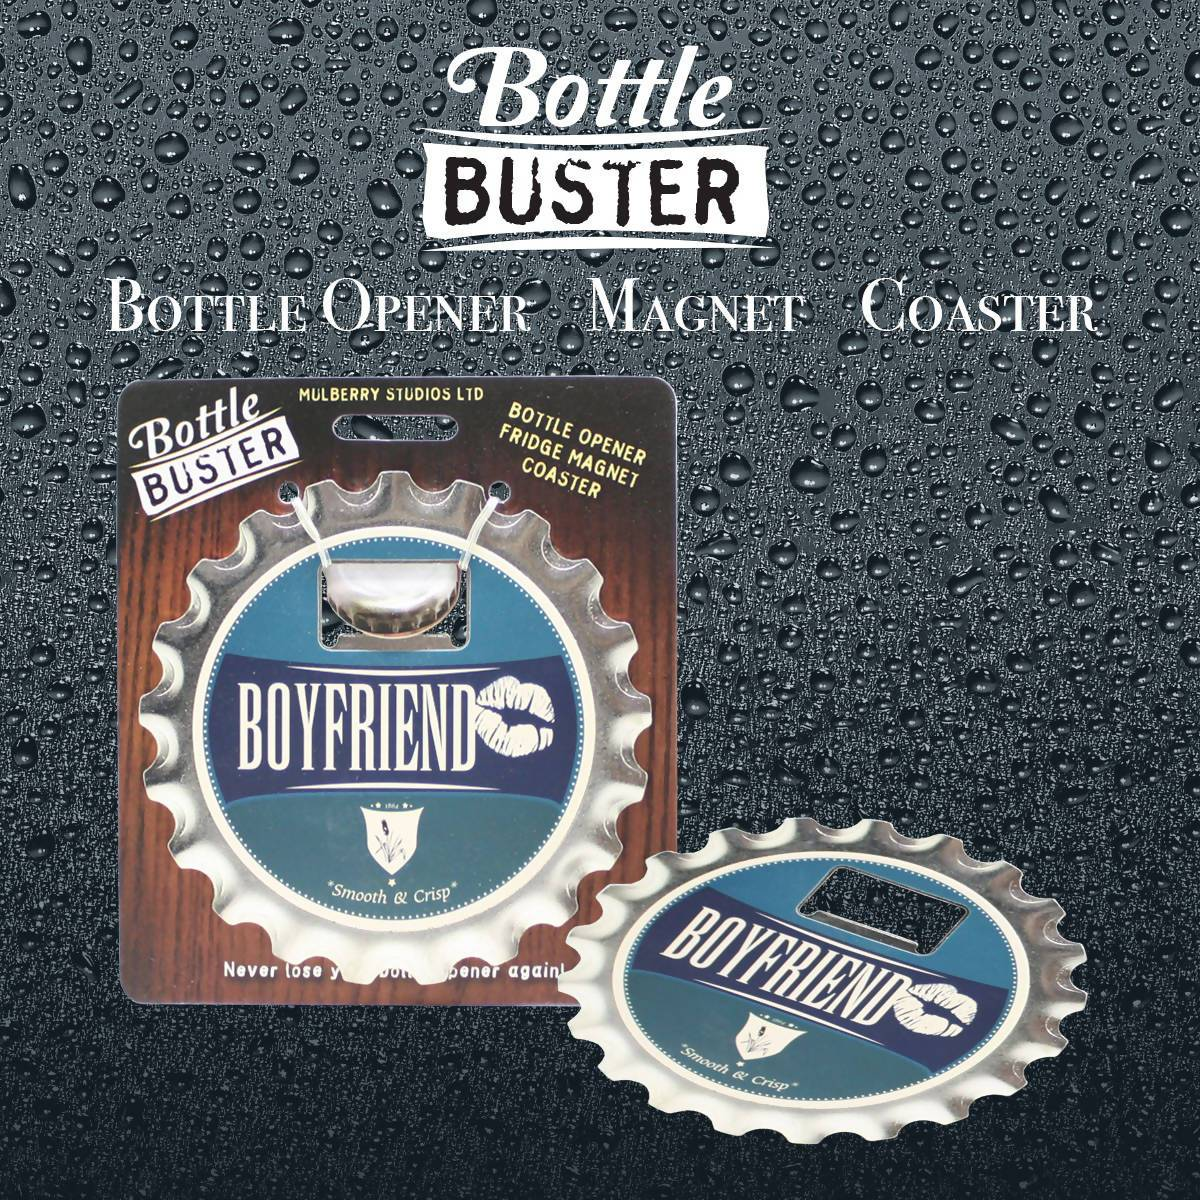 BOTTLE BUSTER - Best Bottle Opener : Boyfriend - Bottle Openers - La Belle Collection - Naiise